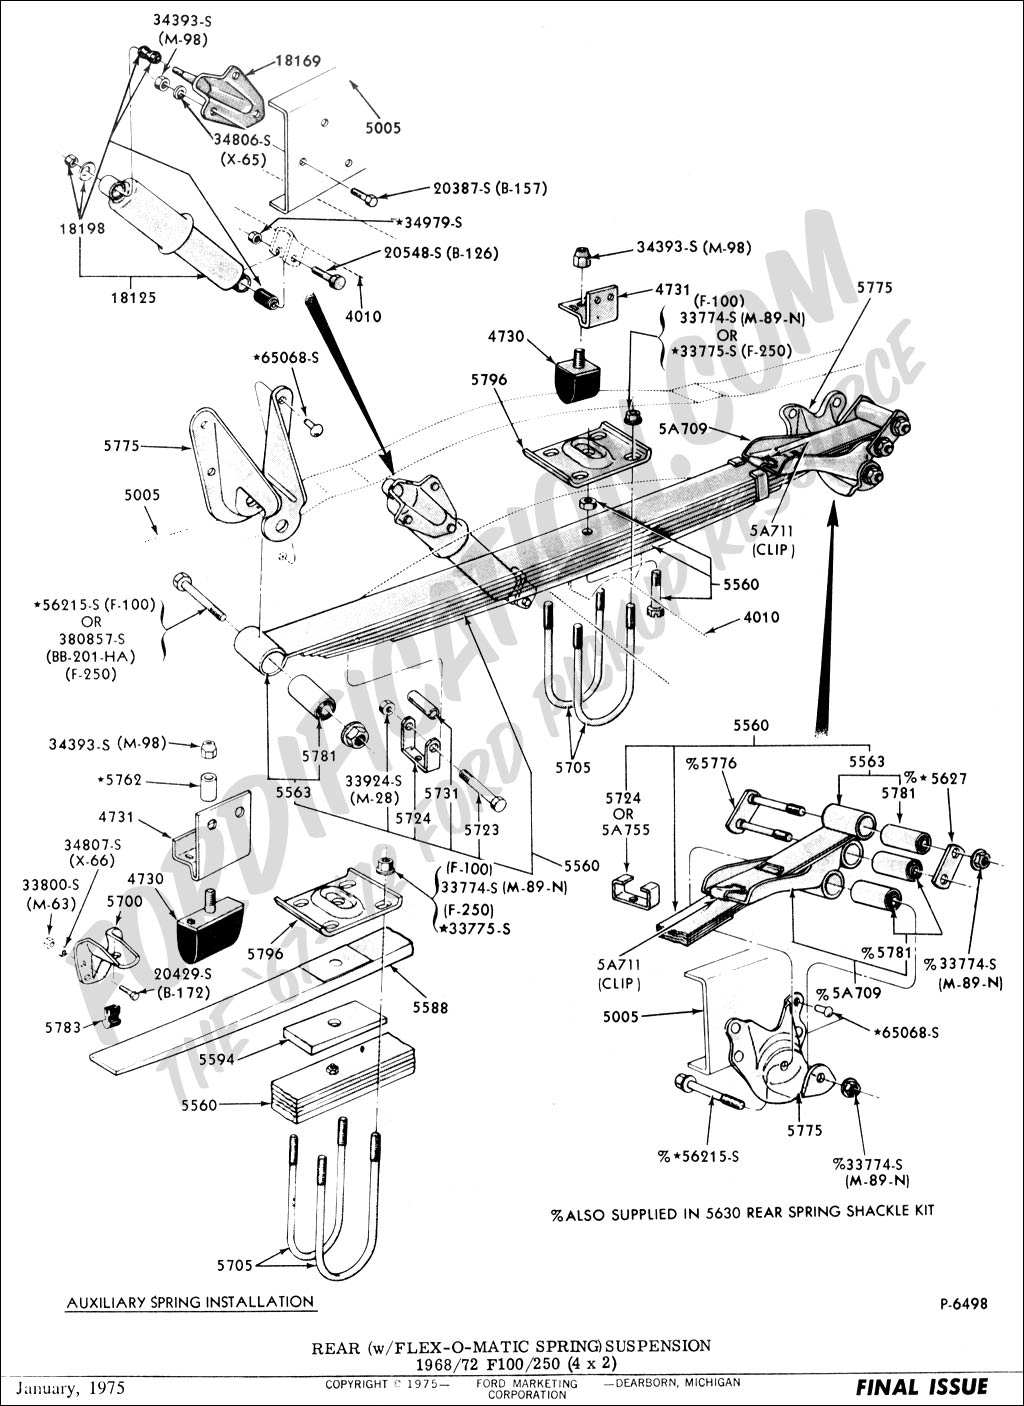 1971 F100 Suspension Diagram - Best Secret Wiring Diagram • Wiring Diagram For Ford Truck on pickup truck diagram, 1968 ford truck radio, 1968 ford truck cab mount, 1968 ford truck parts, 1968 ford truck brochure, 1968 ford truck exhaust, 1968 ford truck air cleaner, 1968 ford truck shop manual, truck parts diagram, 93 ford relay diagram, 1968 ford truck transmission, 1968 ford truck wire schematic drawing, 1968 ford truck carburetor, ford truck engine diagram, ford truck rear brake diagram, 1968 ford truck wheels,